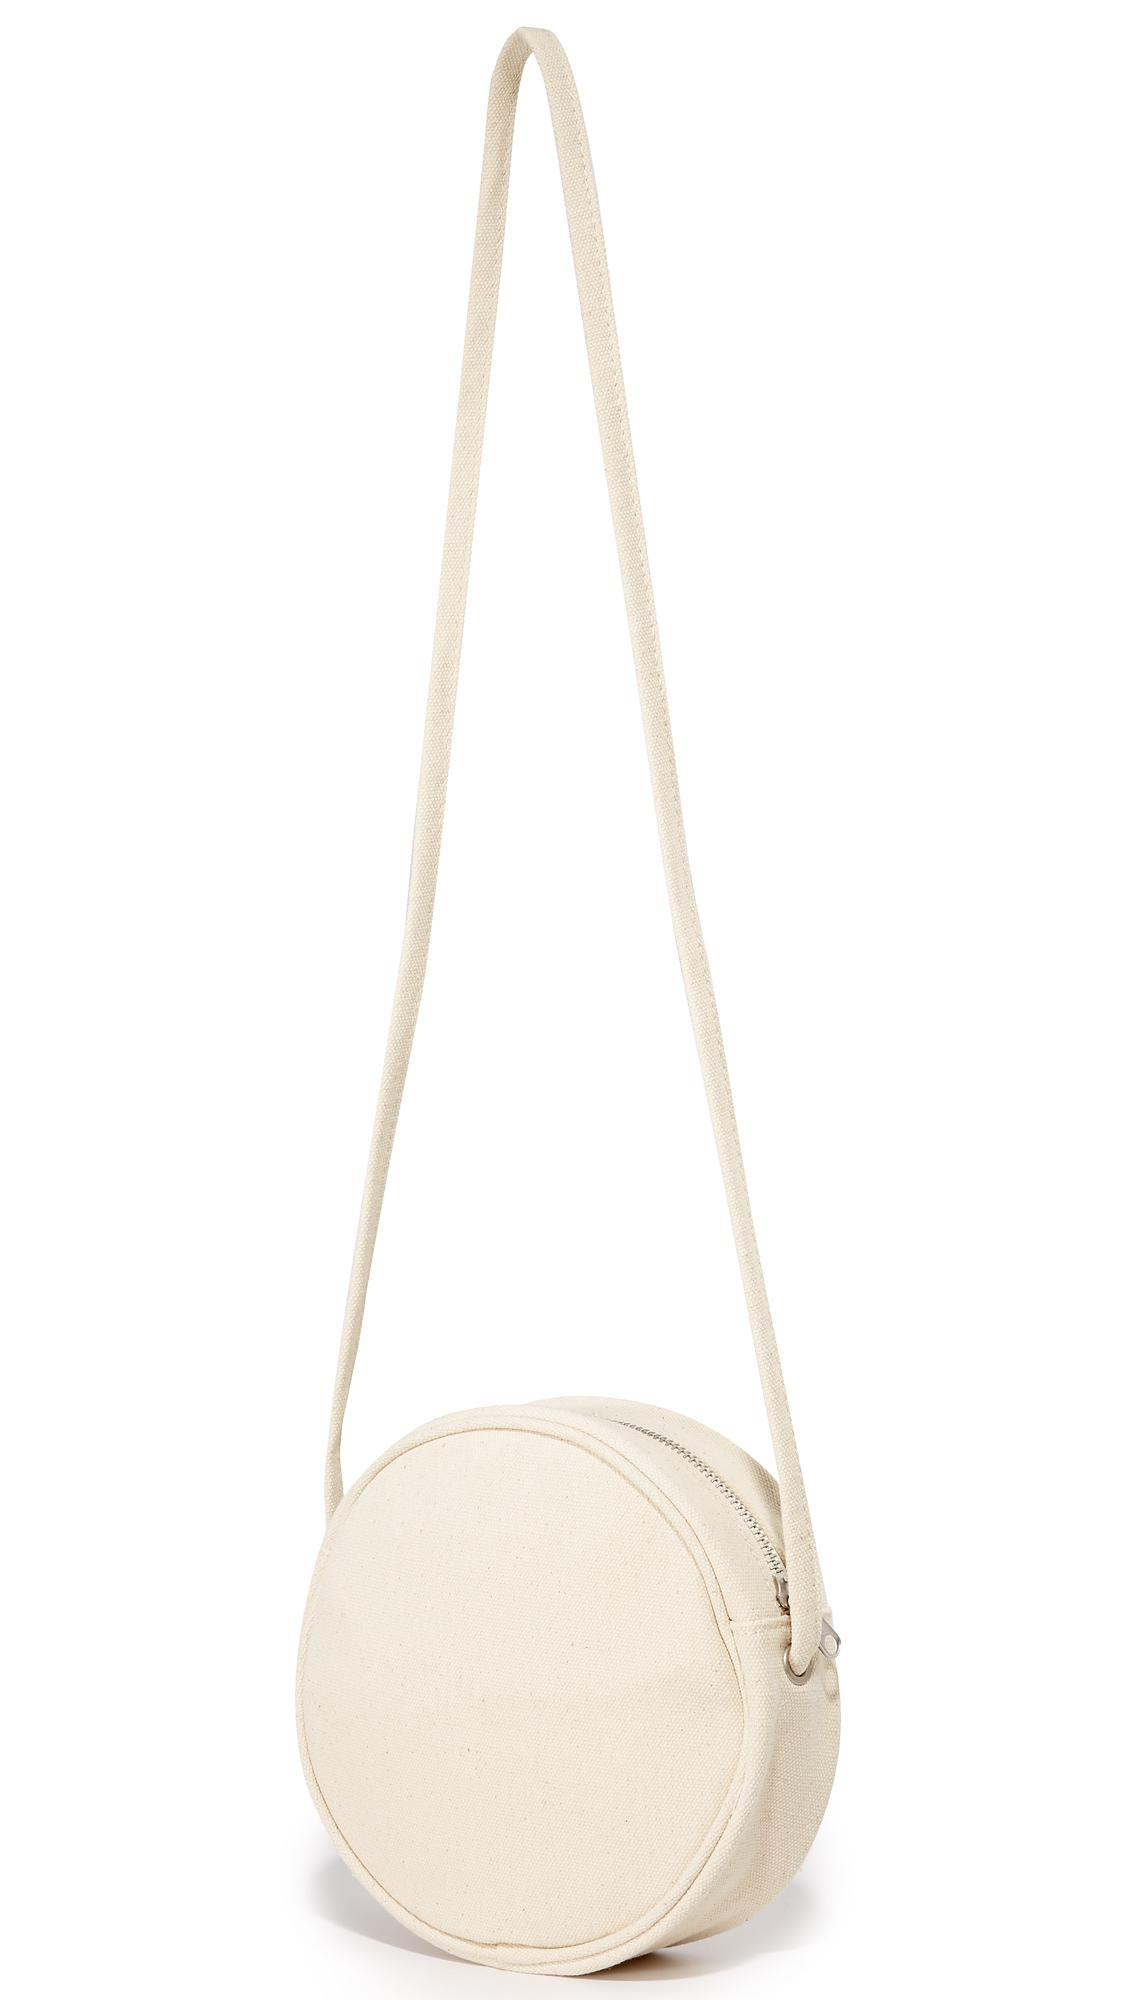 BAGGU Small Canvas Circle Purse in Natural - Lyst a74bc9f478051